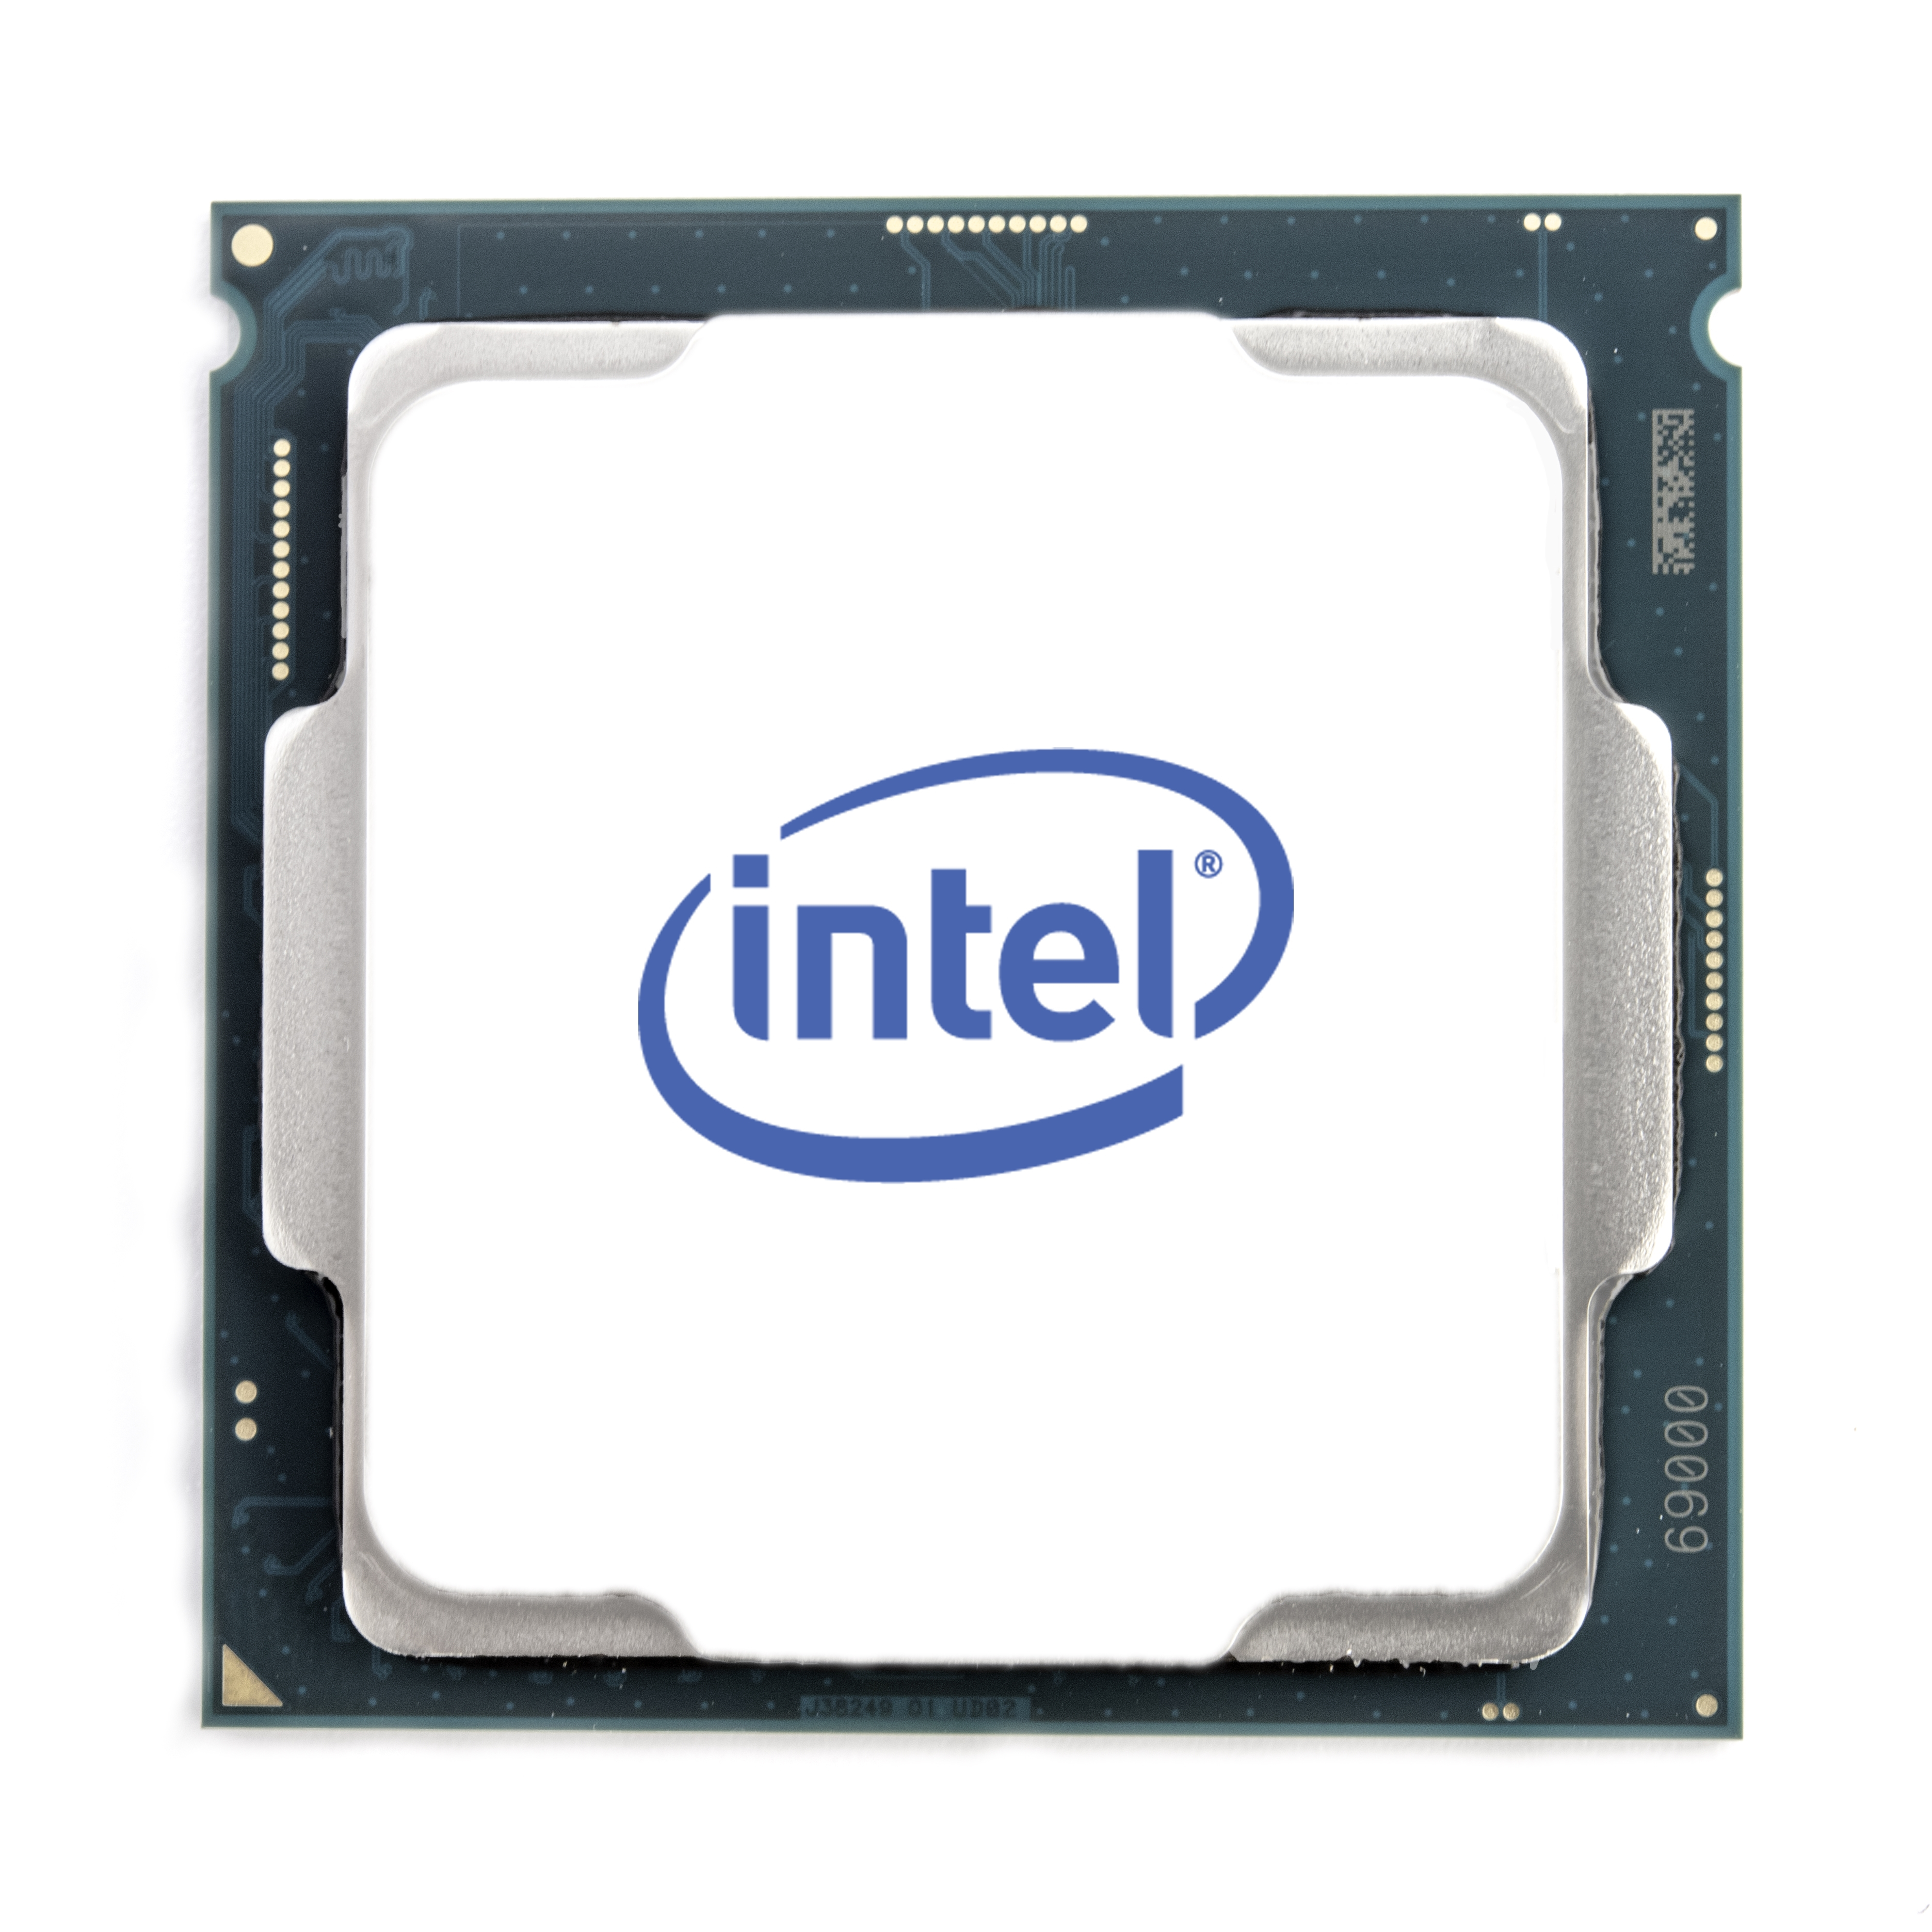 Intel Core i5-8400T, 6C/6T, 2,8/4,0 GHz, 9 MB, 65 W, S1151, UHD Graphics 630, 350/1050 Boxed